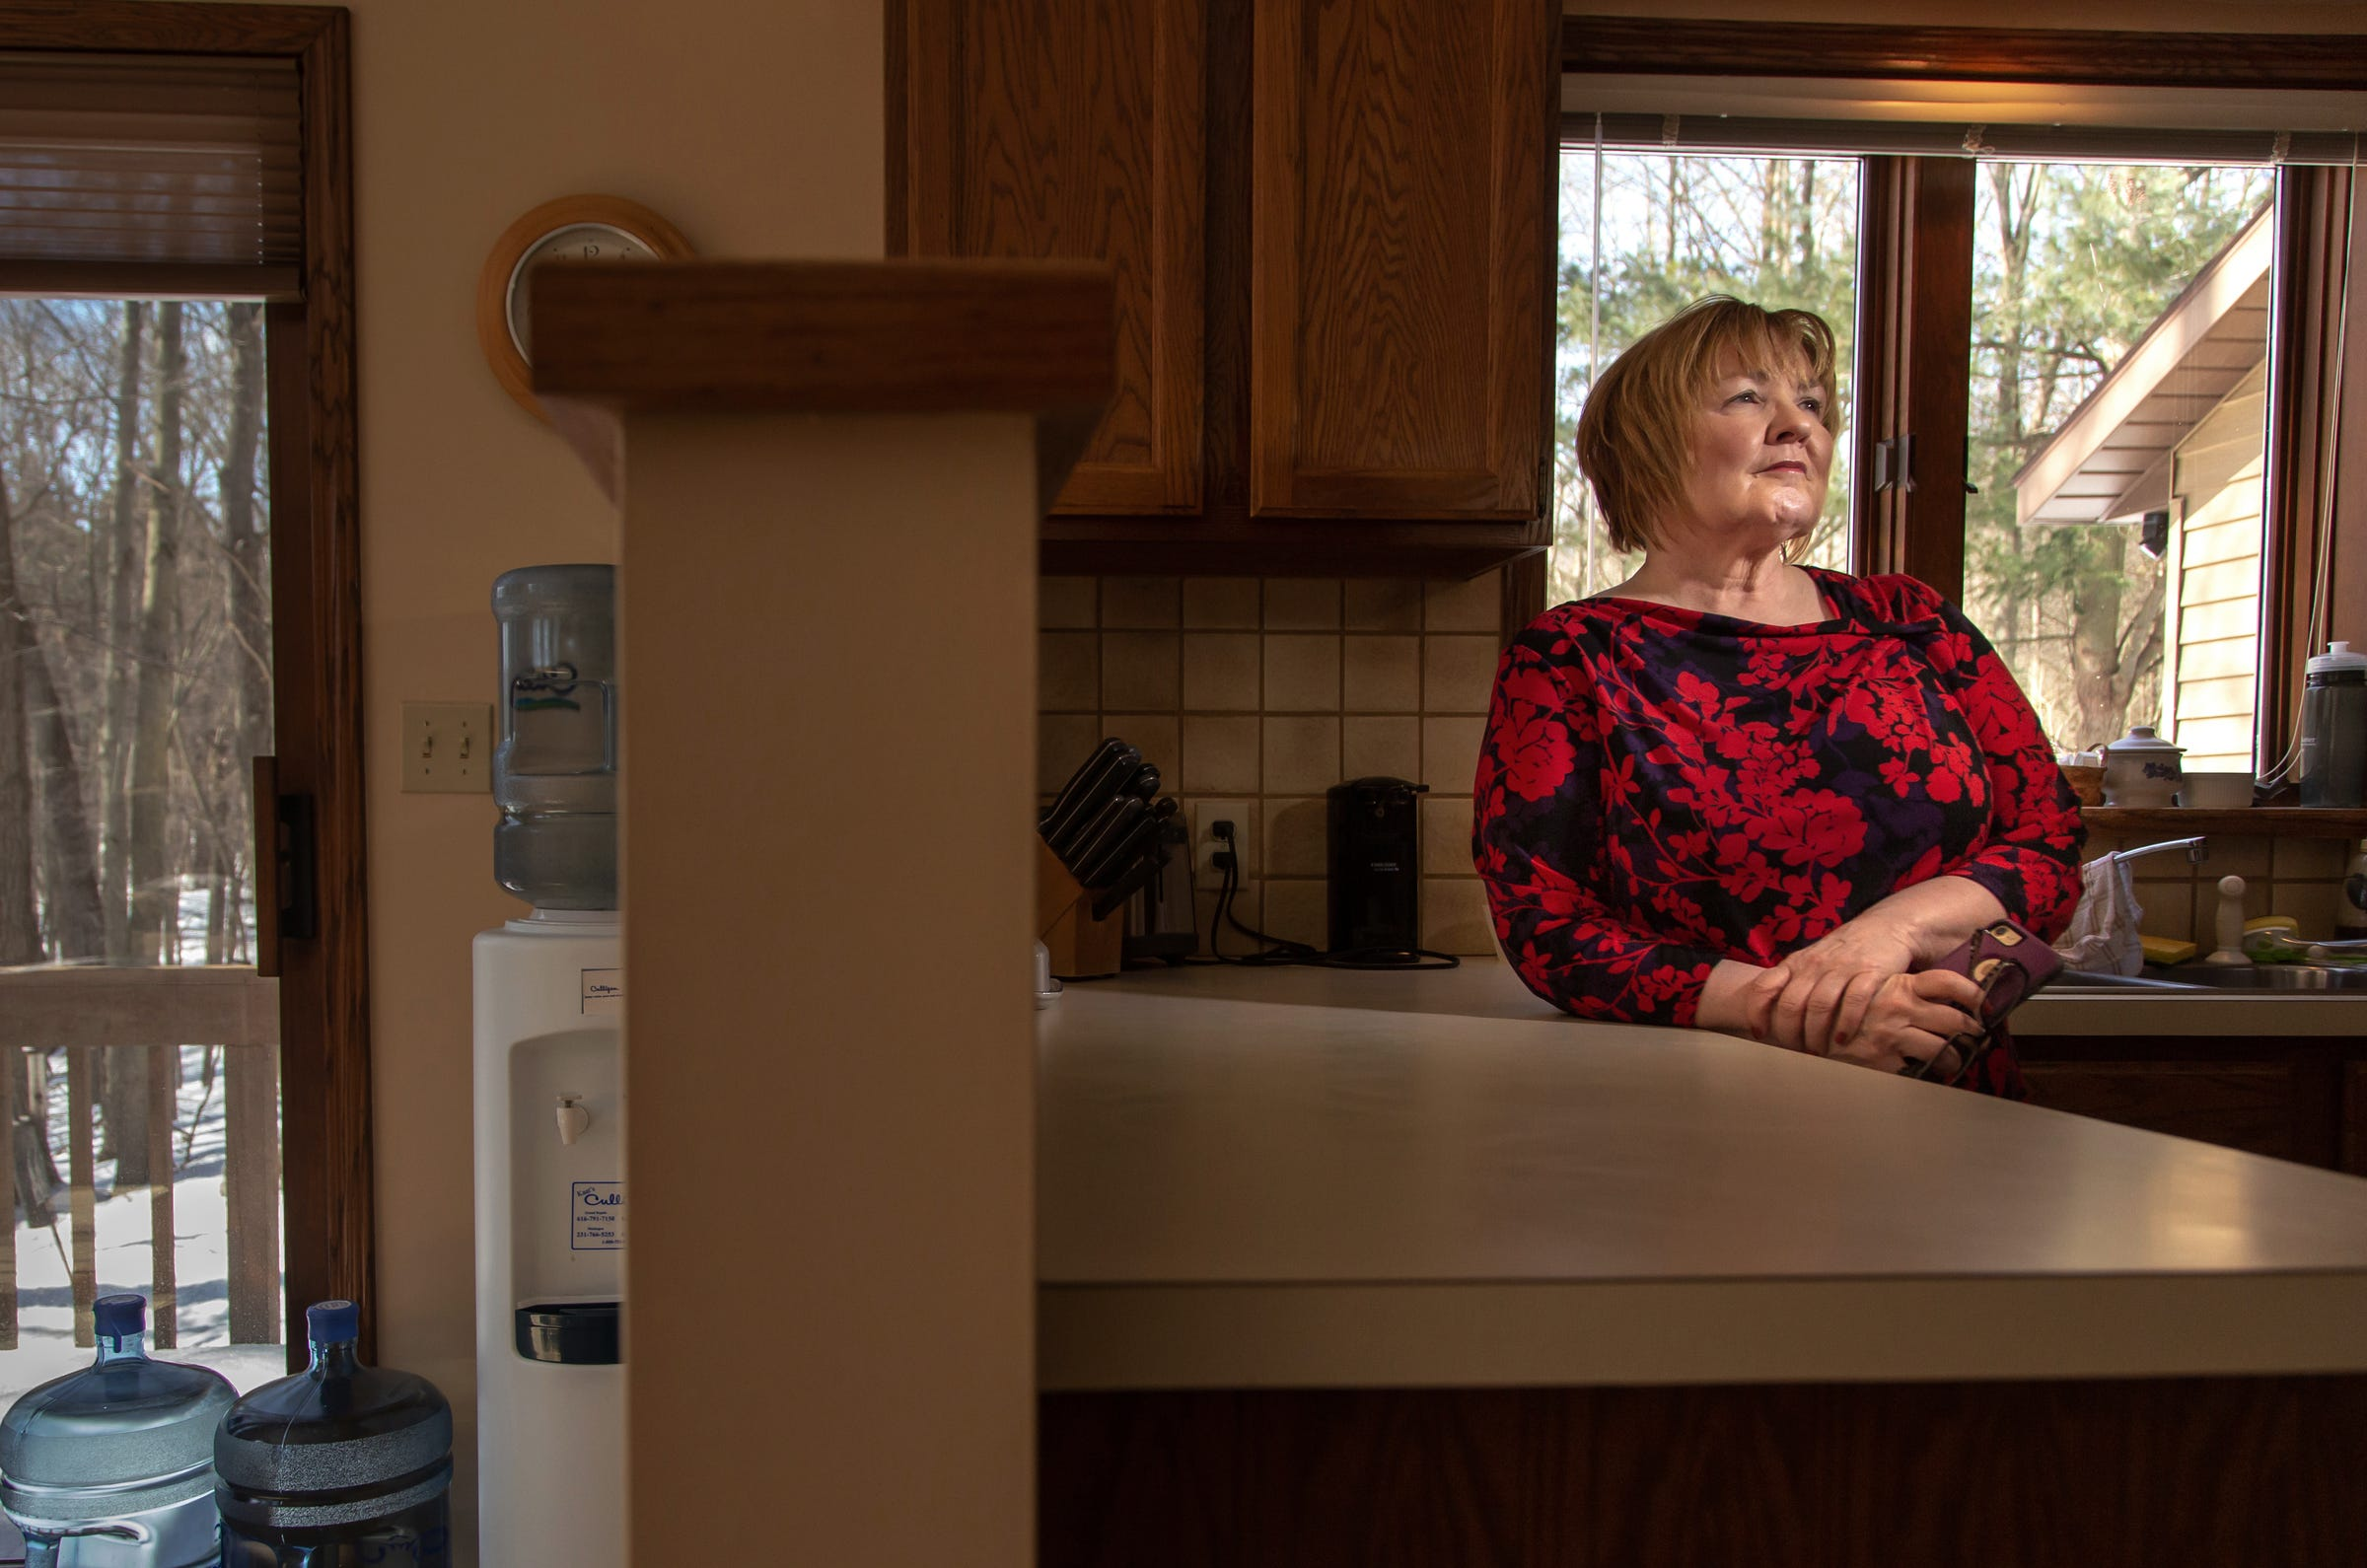 Sandy Wynn-Stelt of Belmont stands in her home on Monday, March 11, 2019. Wynn-Stelt lives across the street from the former House Street landfill, where Wolverine Worldwide dumped their PFAS-containing waste for decades. The DEQ informed her in 2017 that her well water had PFAS contamination as high as 78,000 parts per trillion. She has sky-high levels in her blood and her husband died of cancer over the past few years leaving her wondering if it's related.